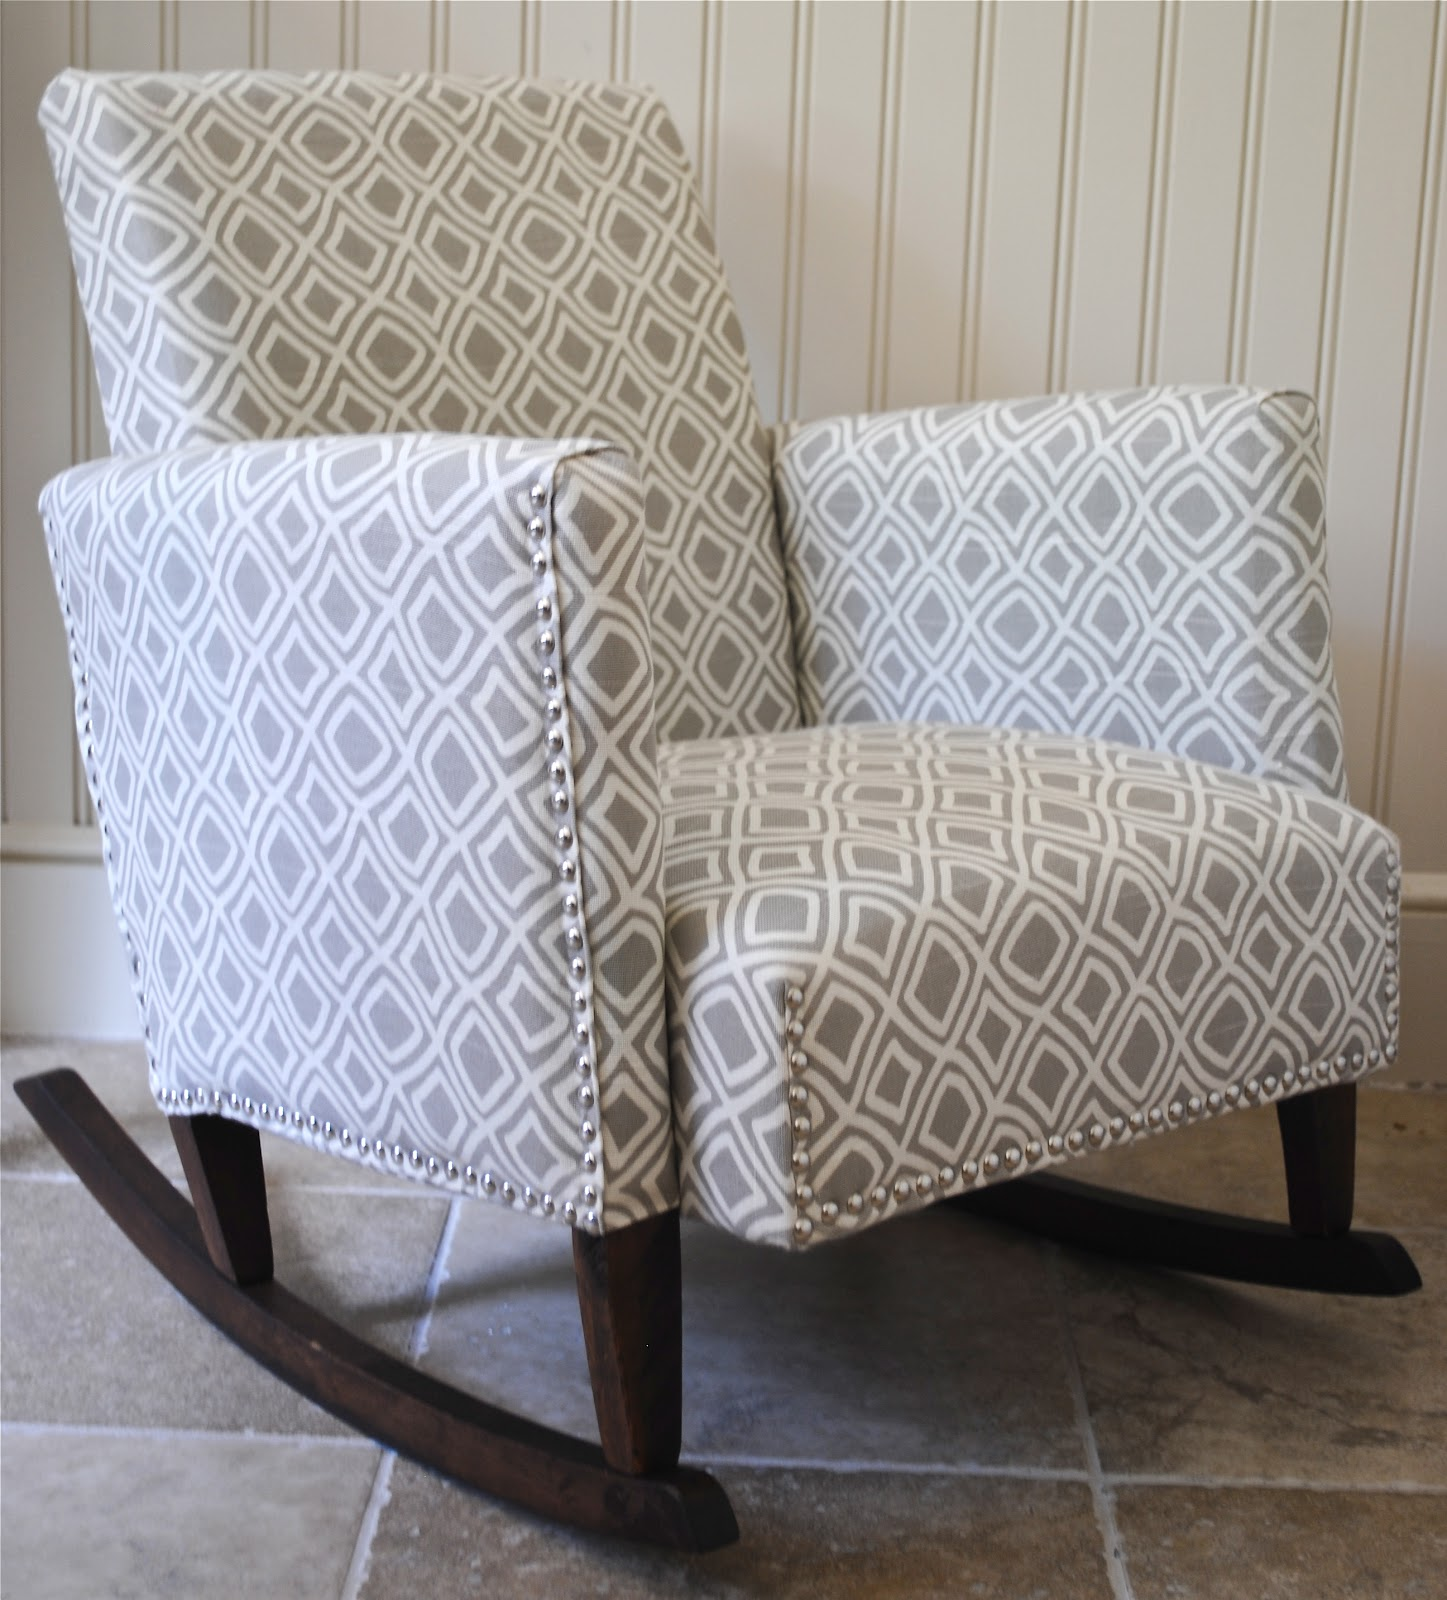 Diy ish upholstered child s rocking chair the